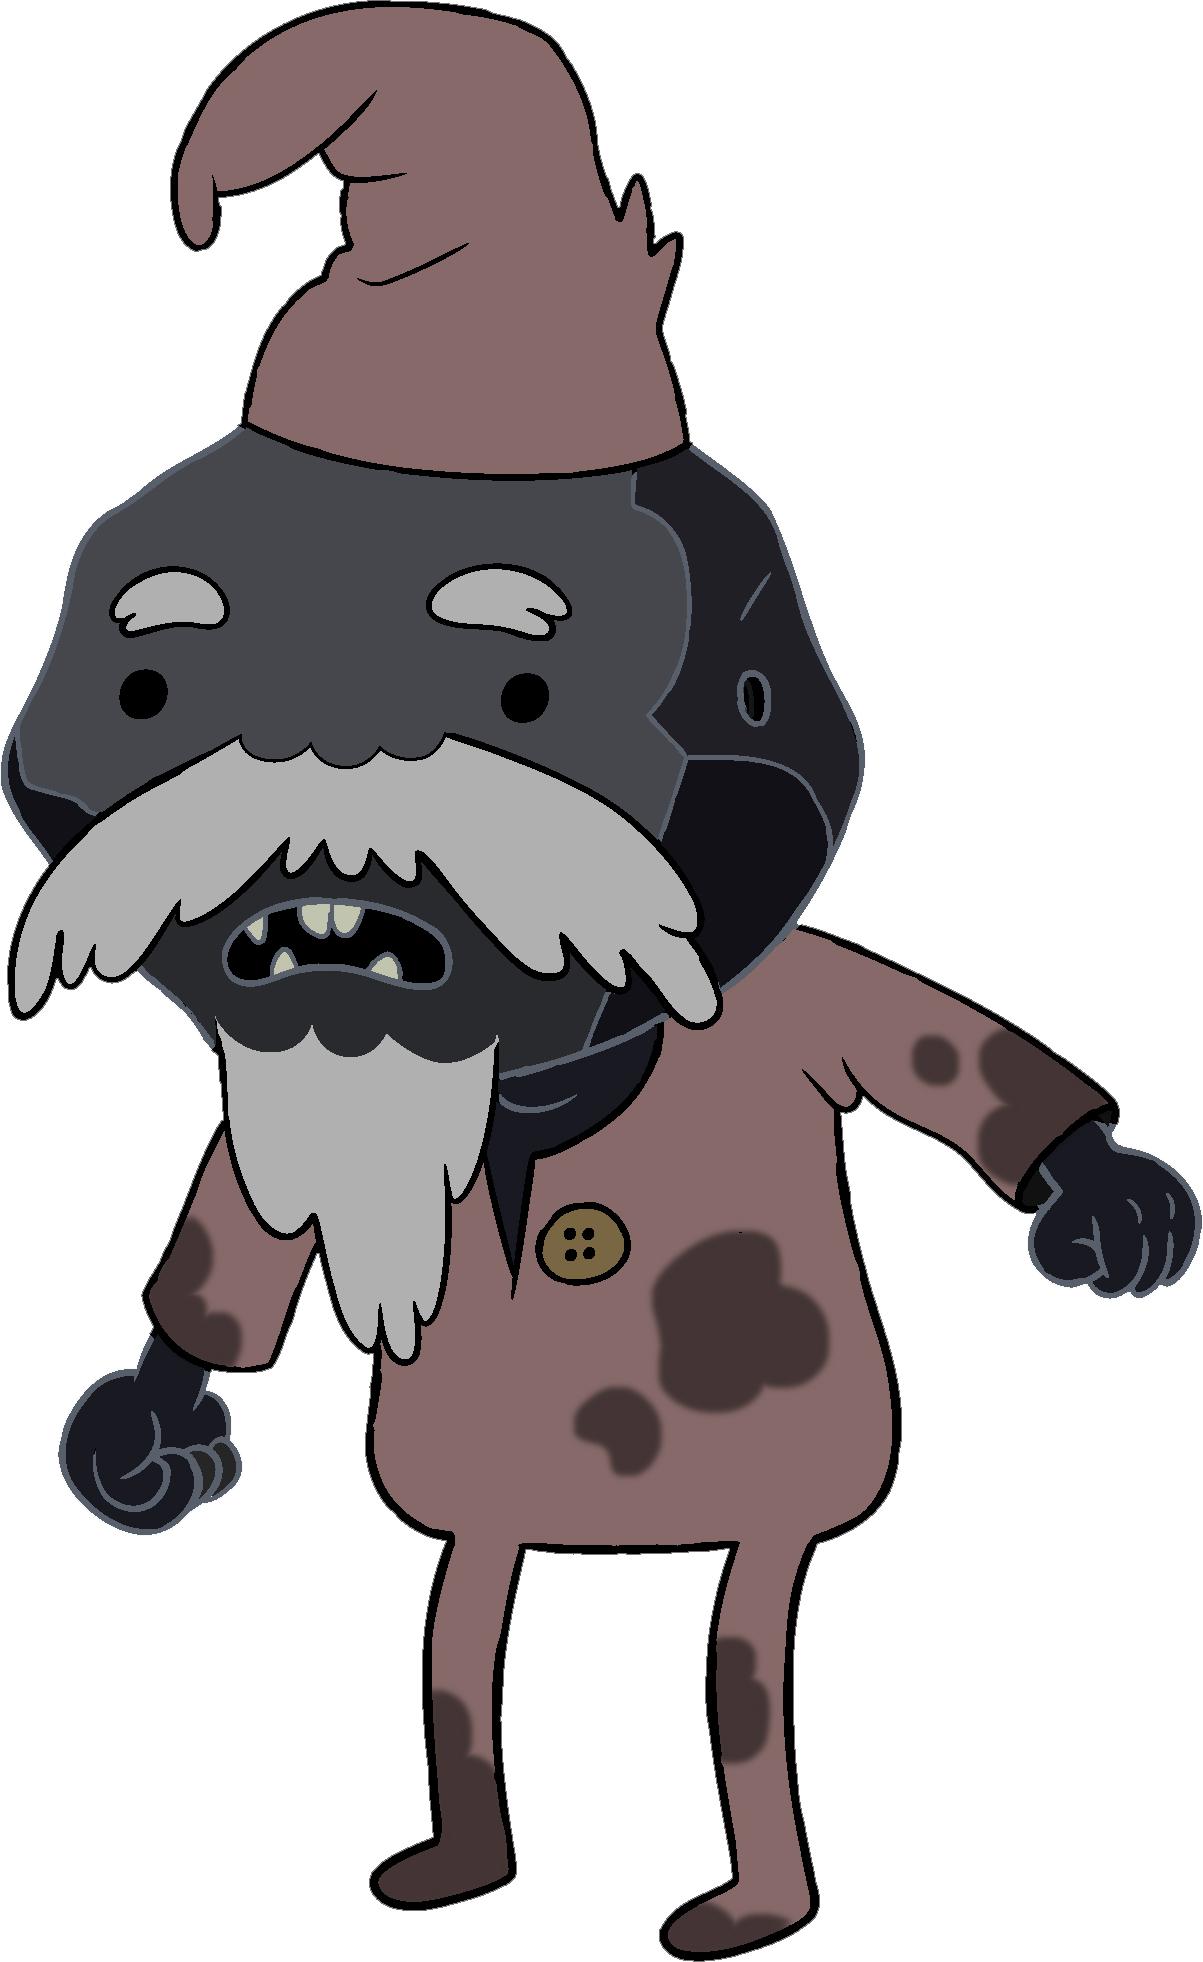 Image coal mang adventure time wiki fandom powered by wikia coal mang biocorpaavc Gallery